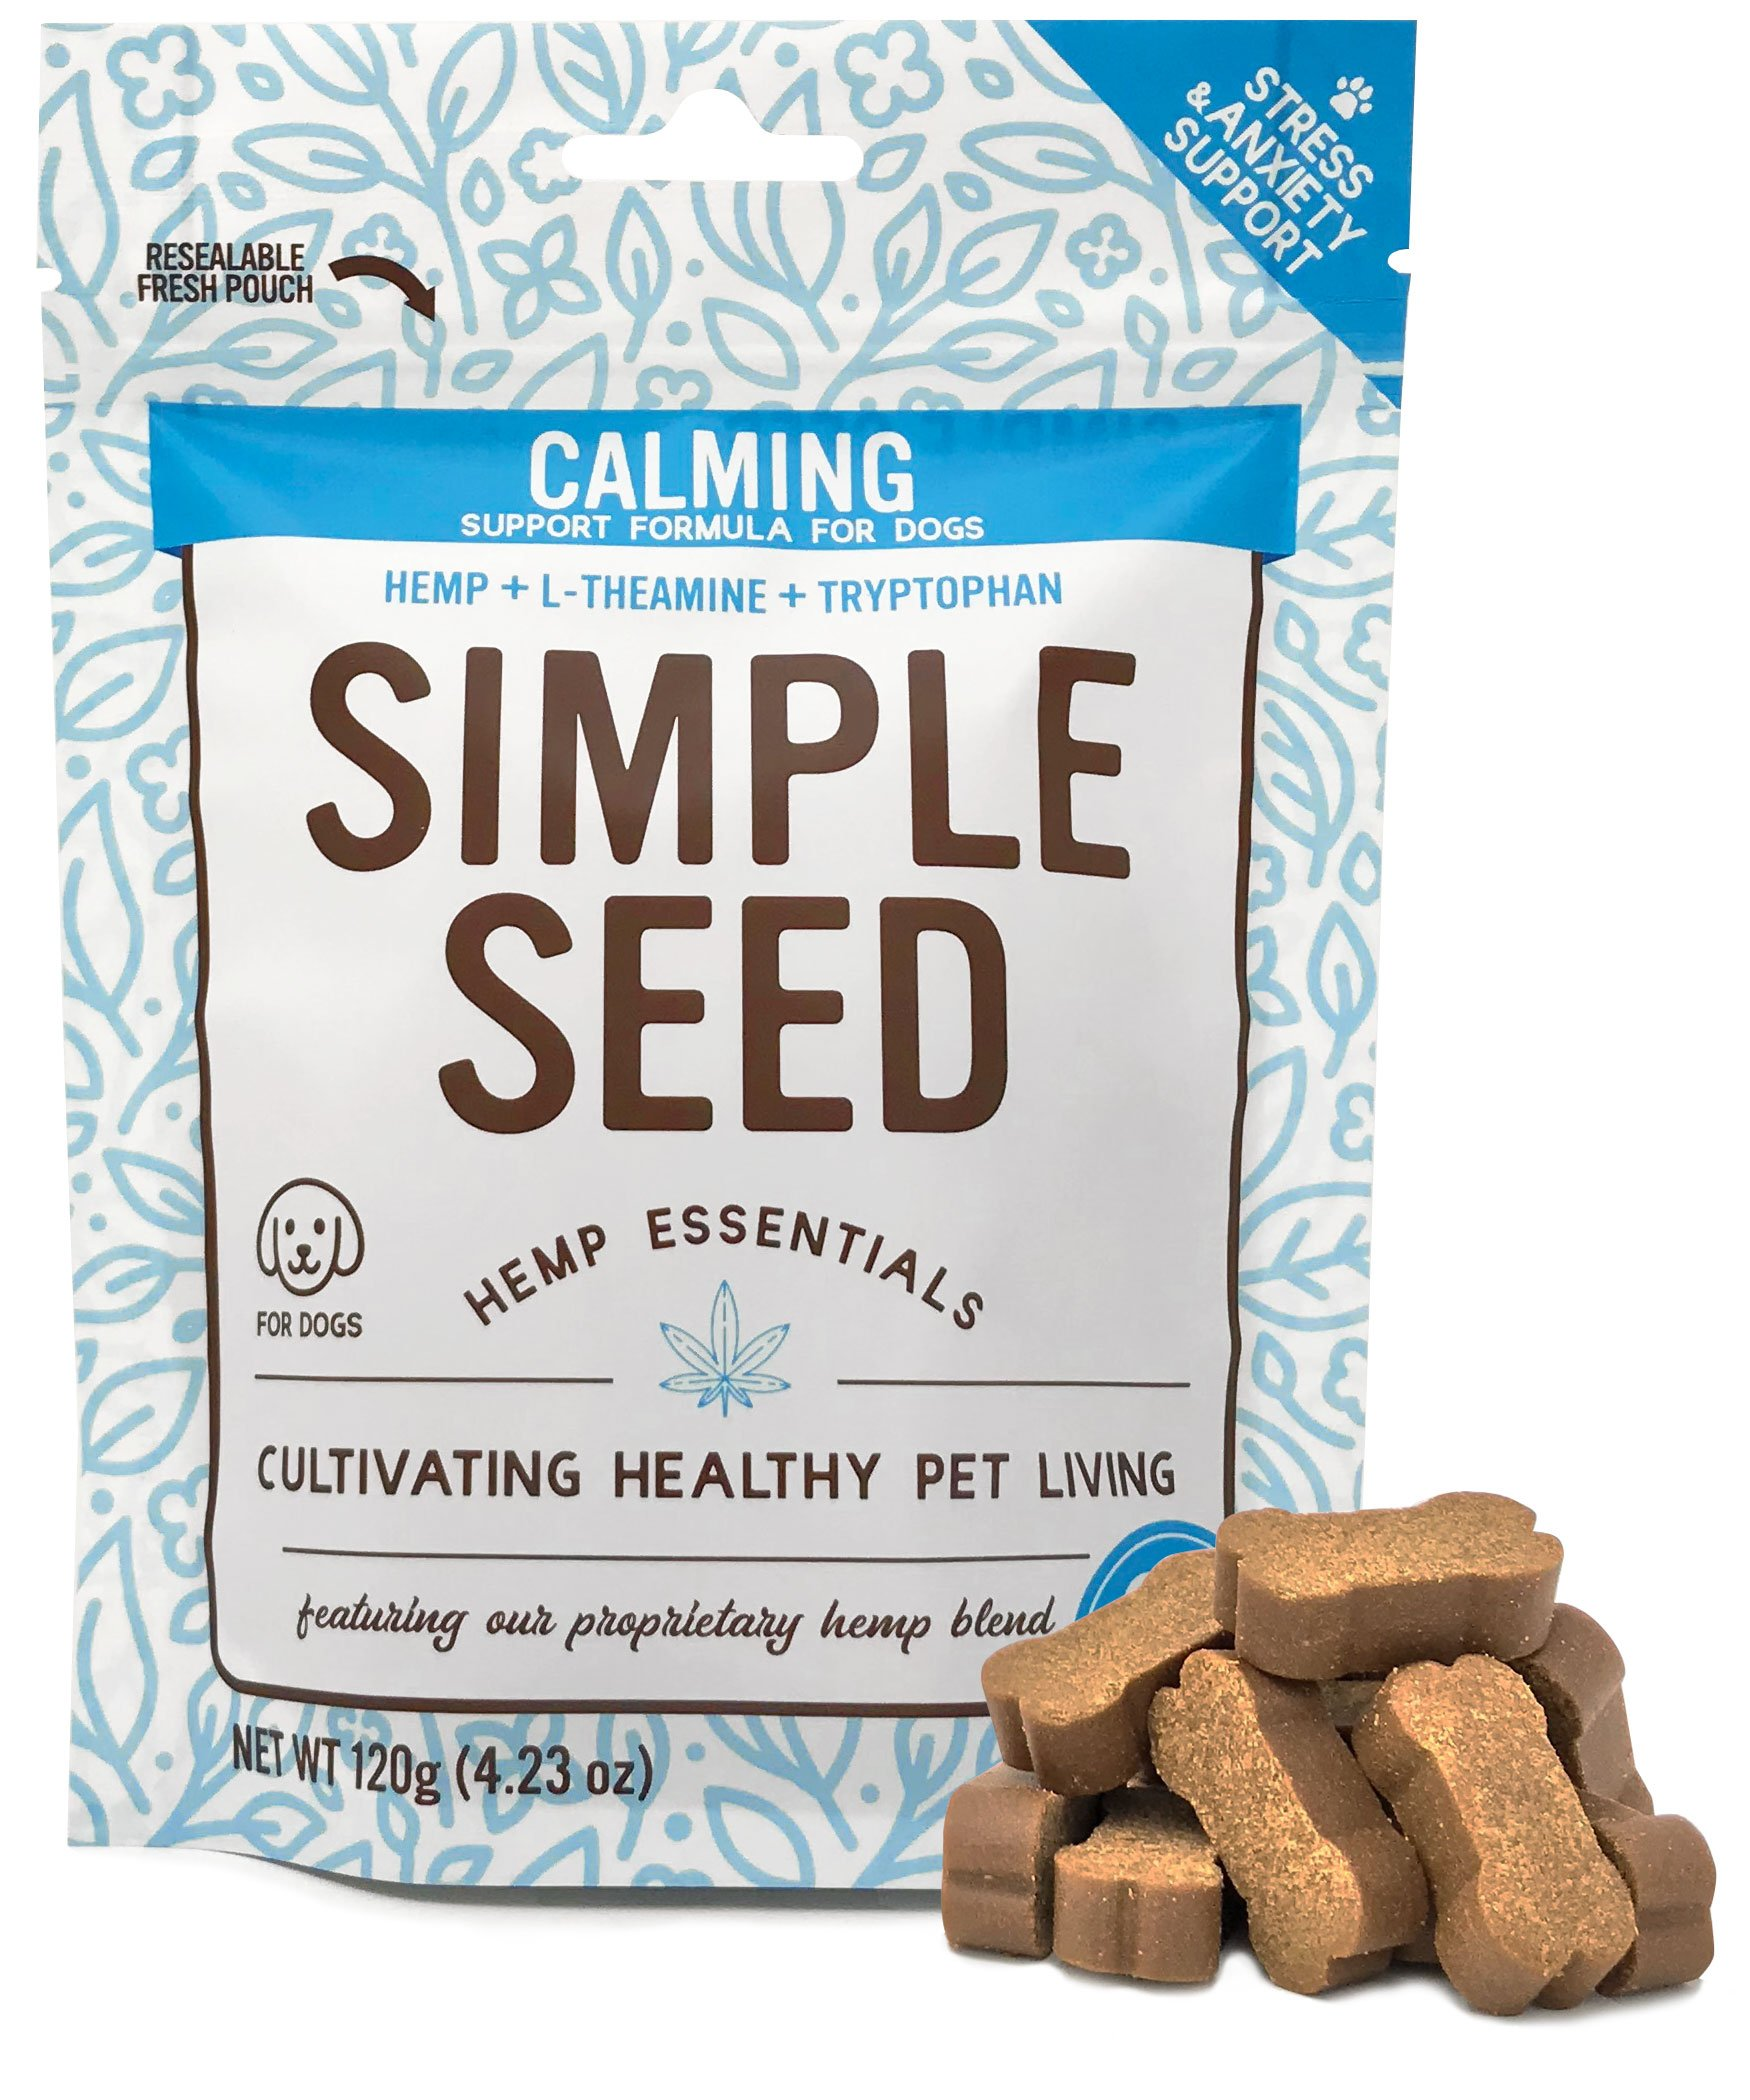 Hemp Calming Treats for Dogs with Separation Anxiety with Tryptophan, L-Theanine, and Hemp Oil by Simple Seed, 30 Soft Chews